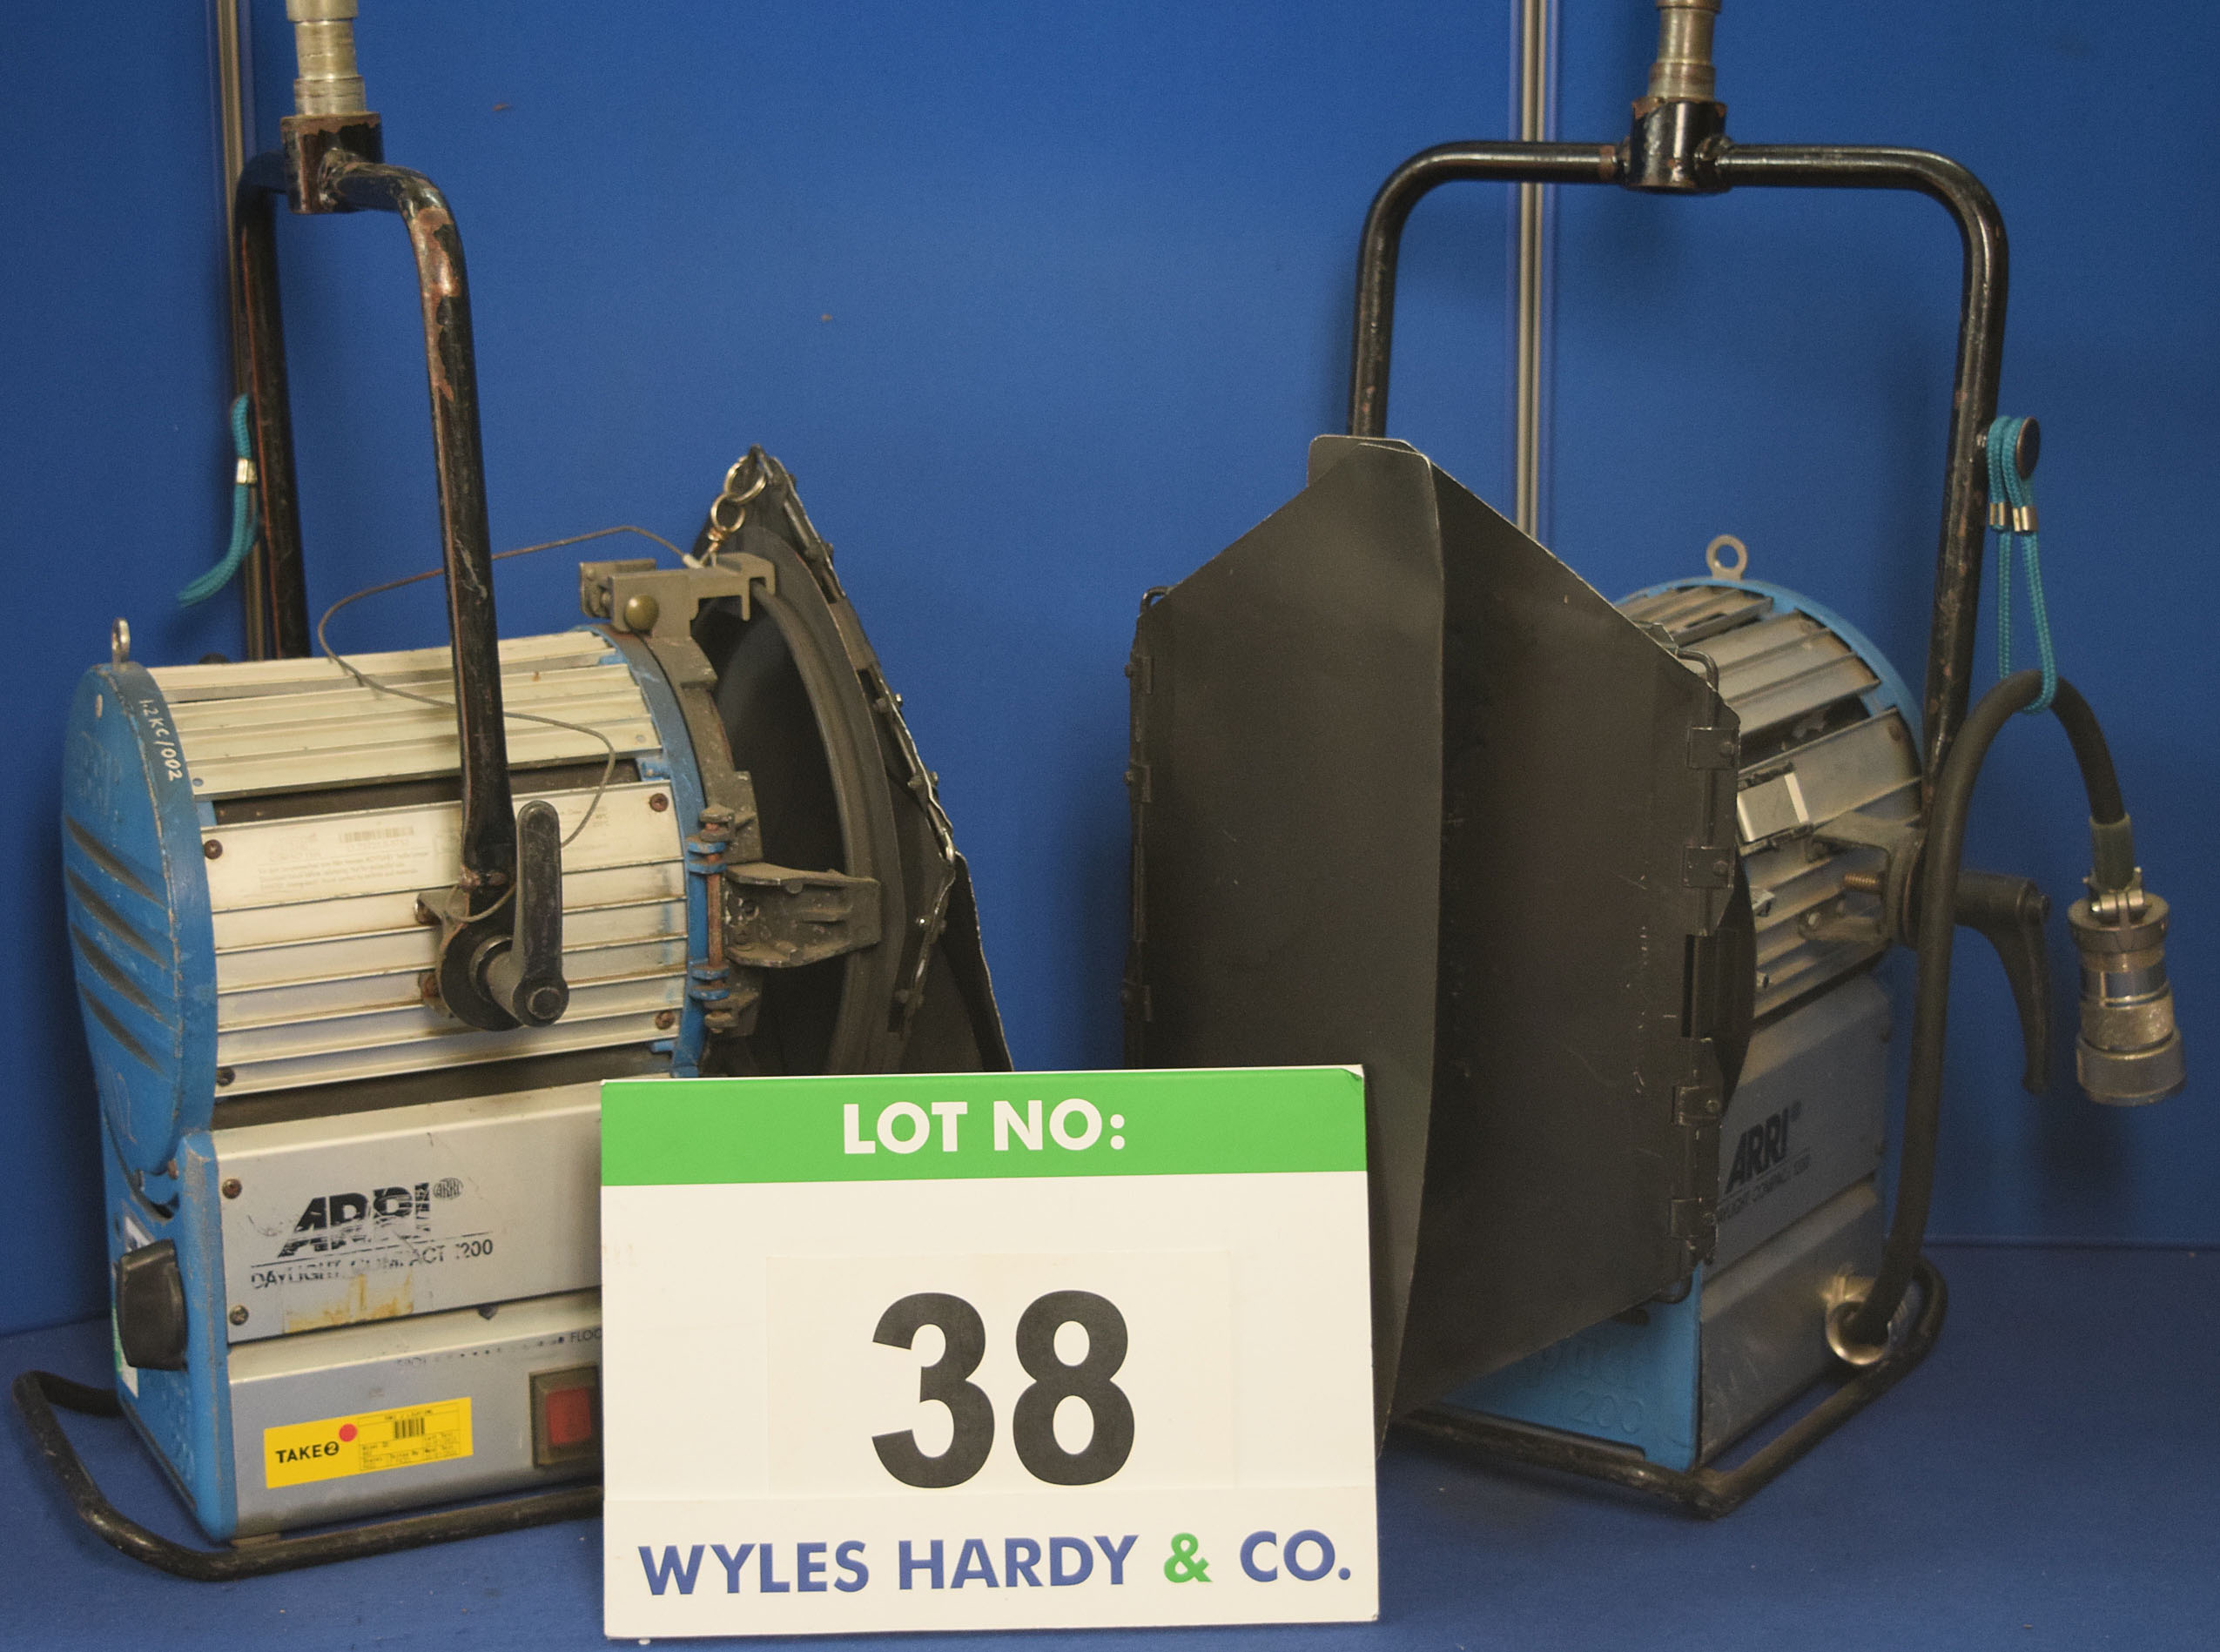 Lot 38 - Two ARRI Daylight Compact 1200 1200W Lights each with fitted Barn Door and Stirrup Mount. Recorded